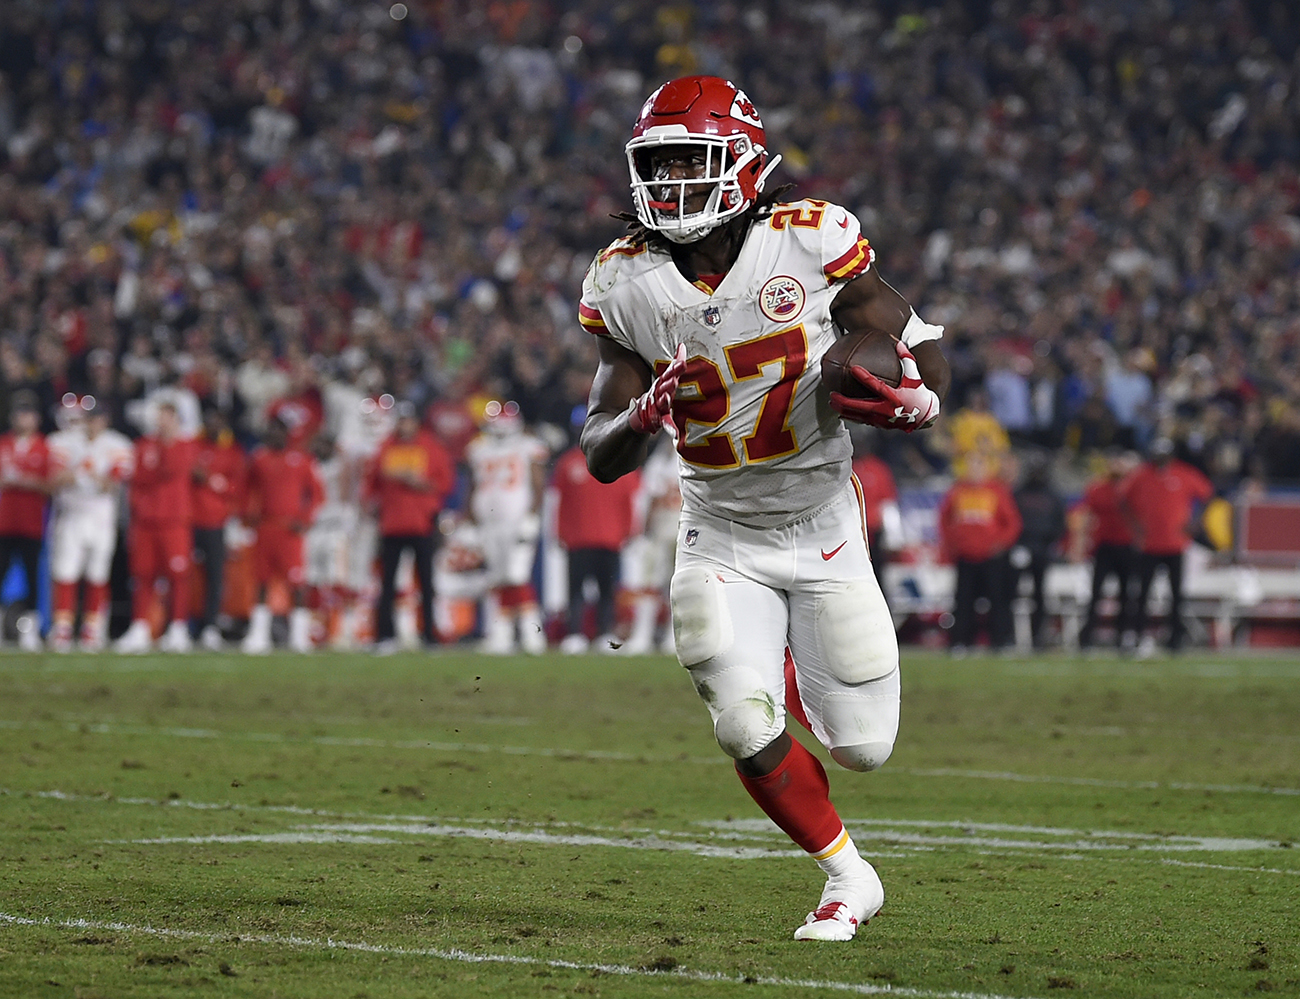 Kareem Hunt led the NFL in rushing as a rookie with 1,327 yards and eight touchdowns in helping Kansas City make the playoffs.